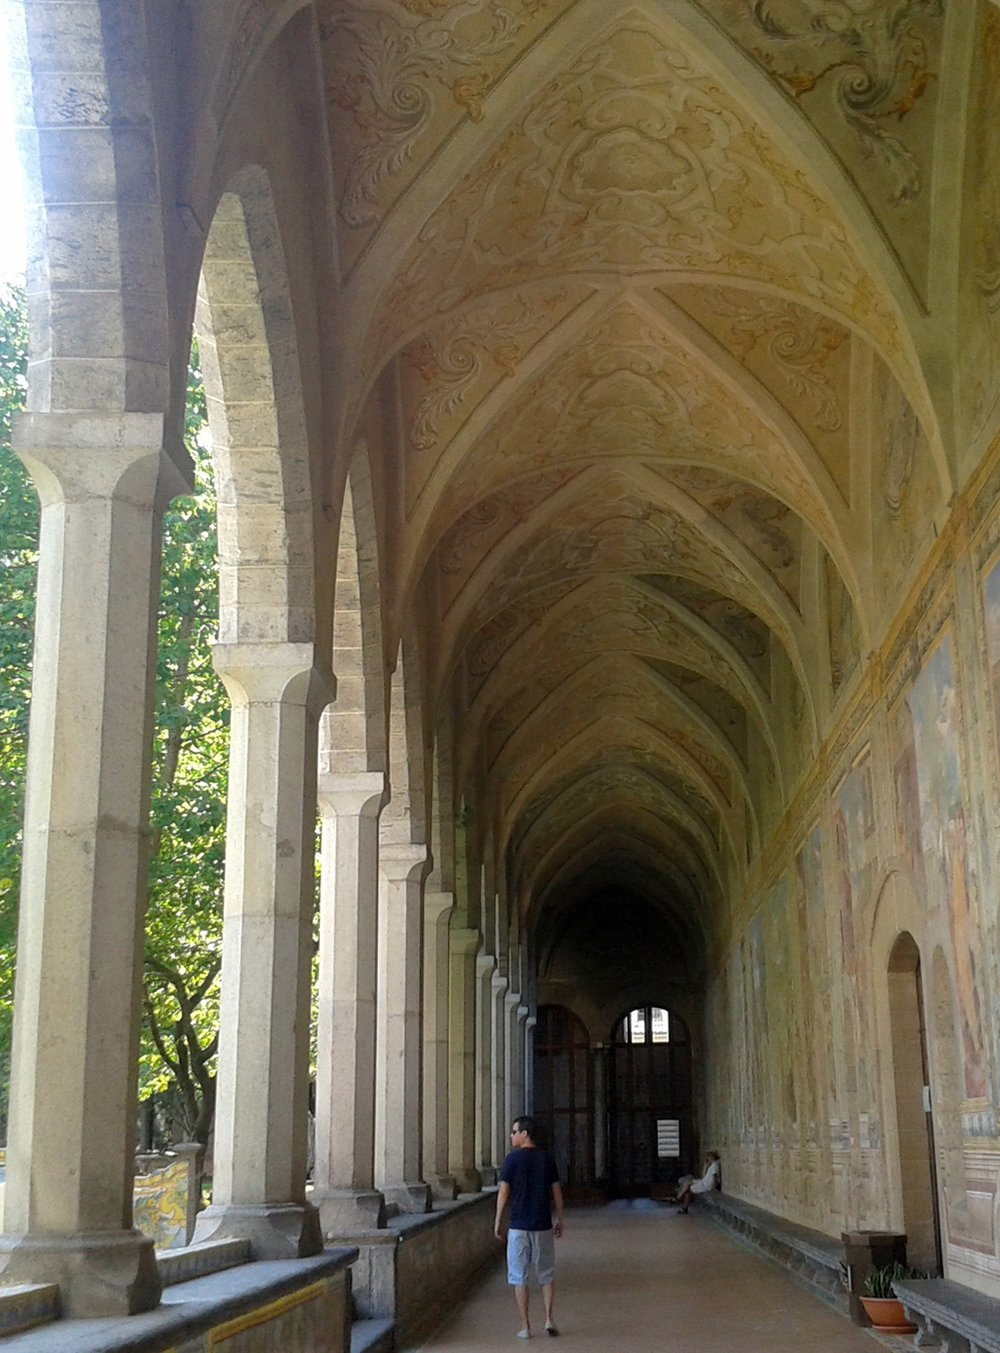 Frescoes on the walls around the cloister.